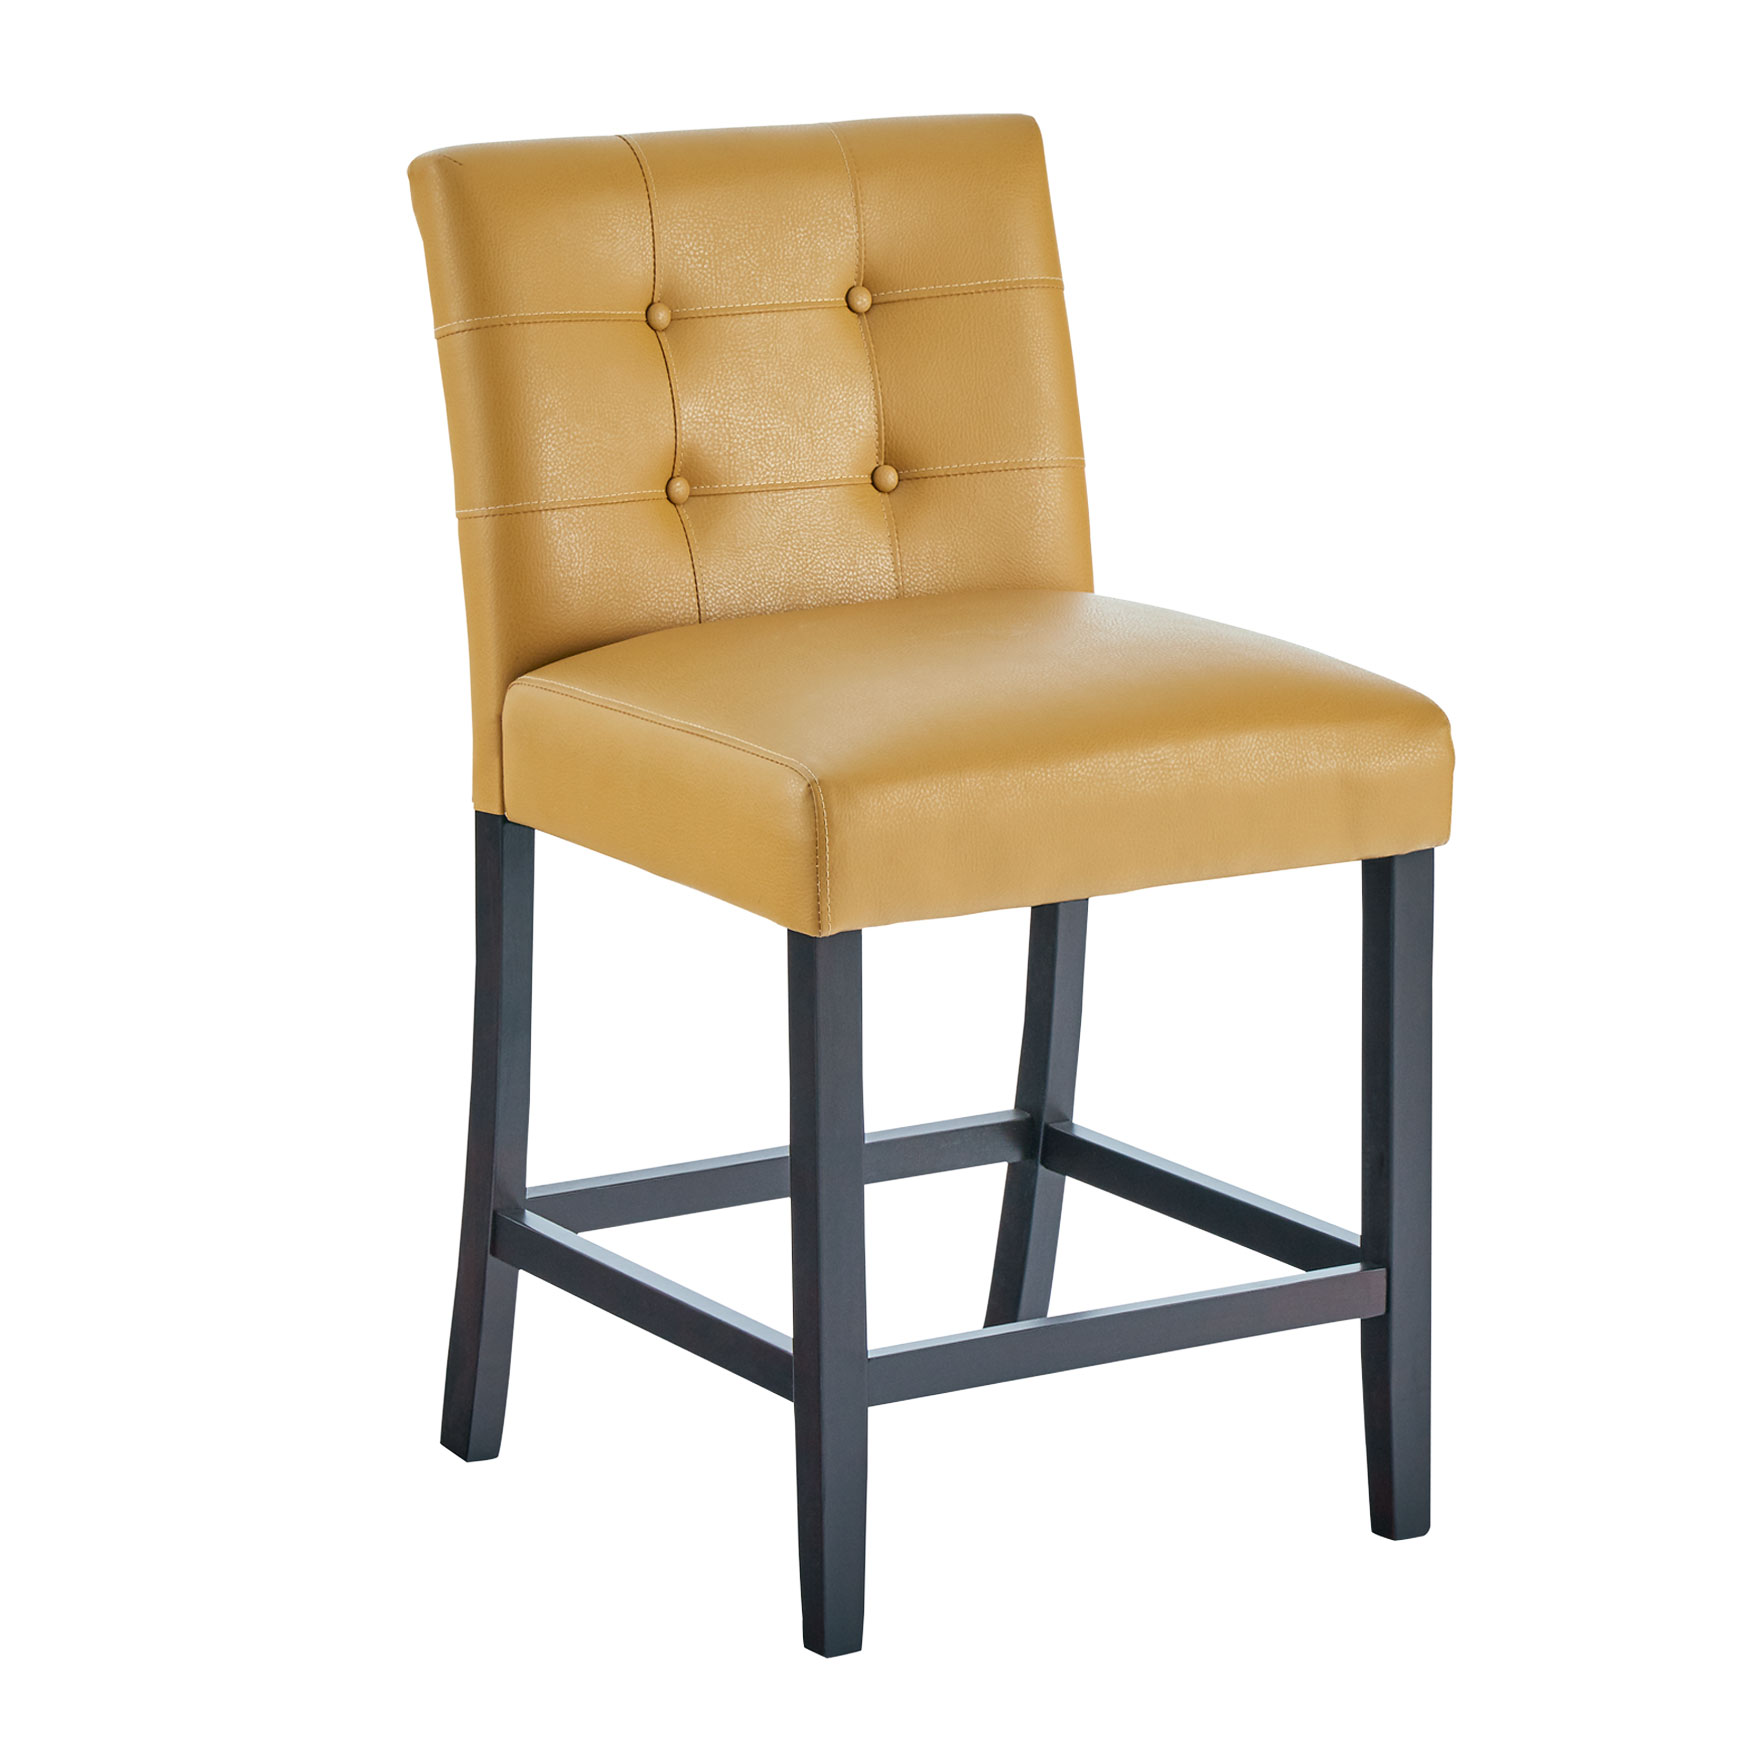 chair plus stool office chairs at costco aida size living counter bar stools brylane